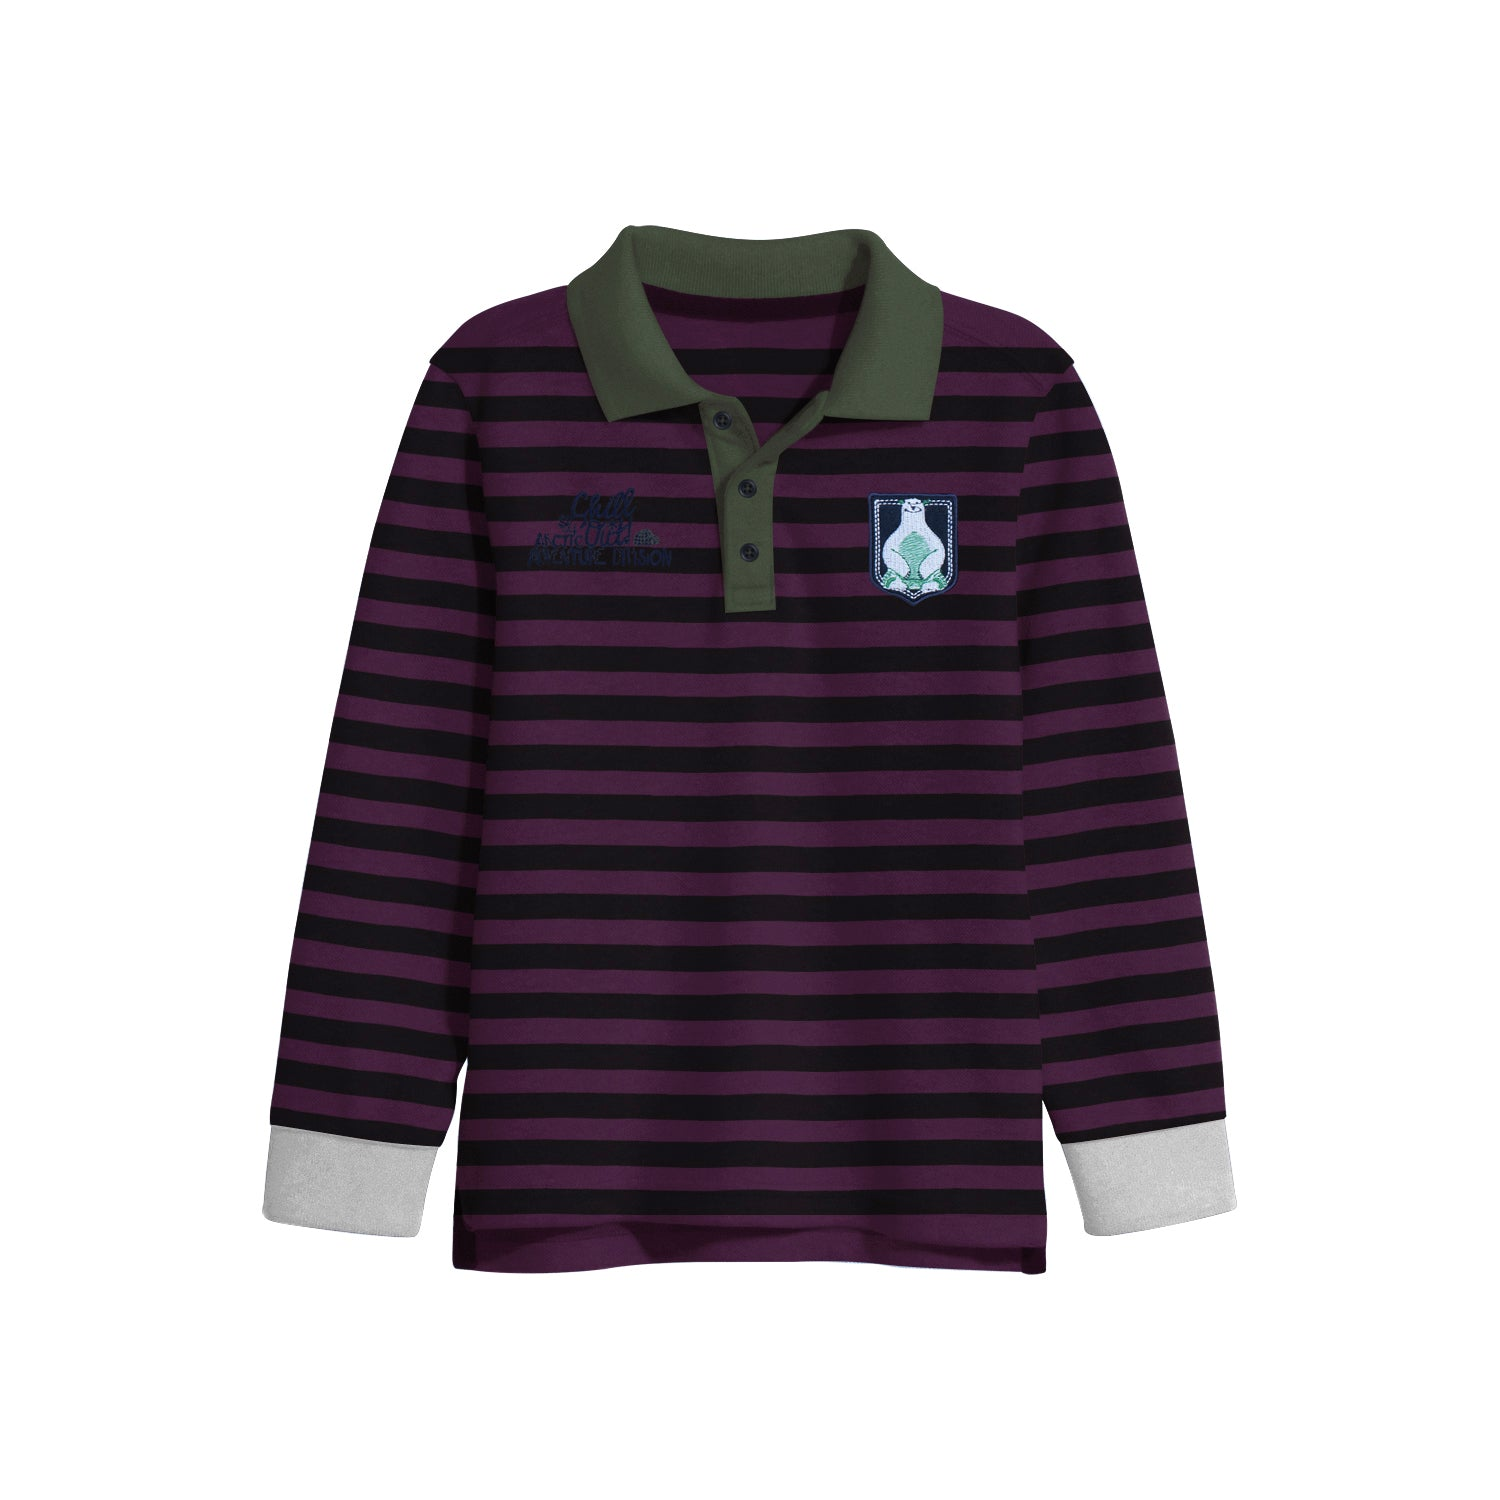 NEXT Single Jersey Polo Shirt For Kids-Dark Maroon with Stripe-BE9349